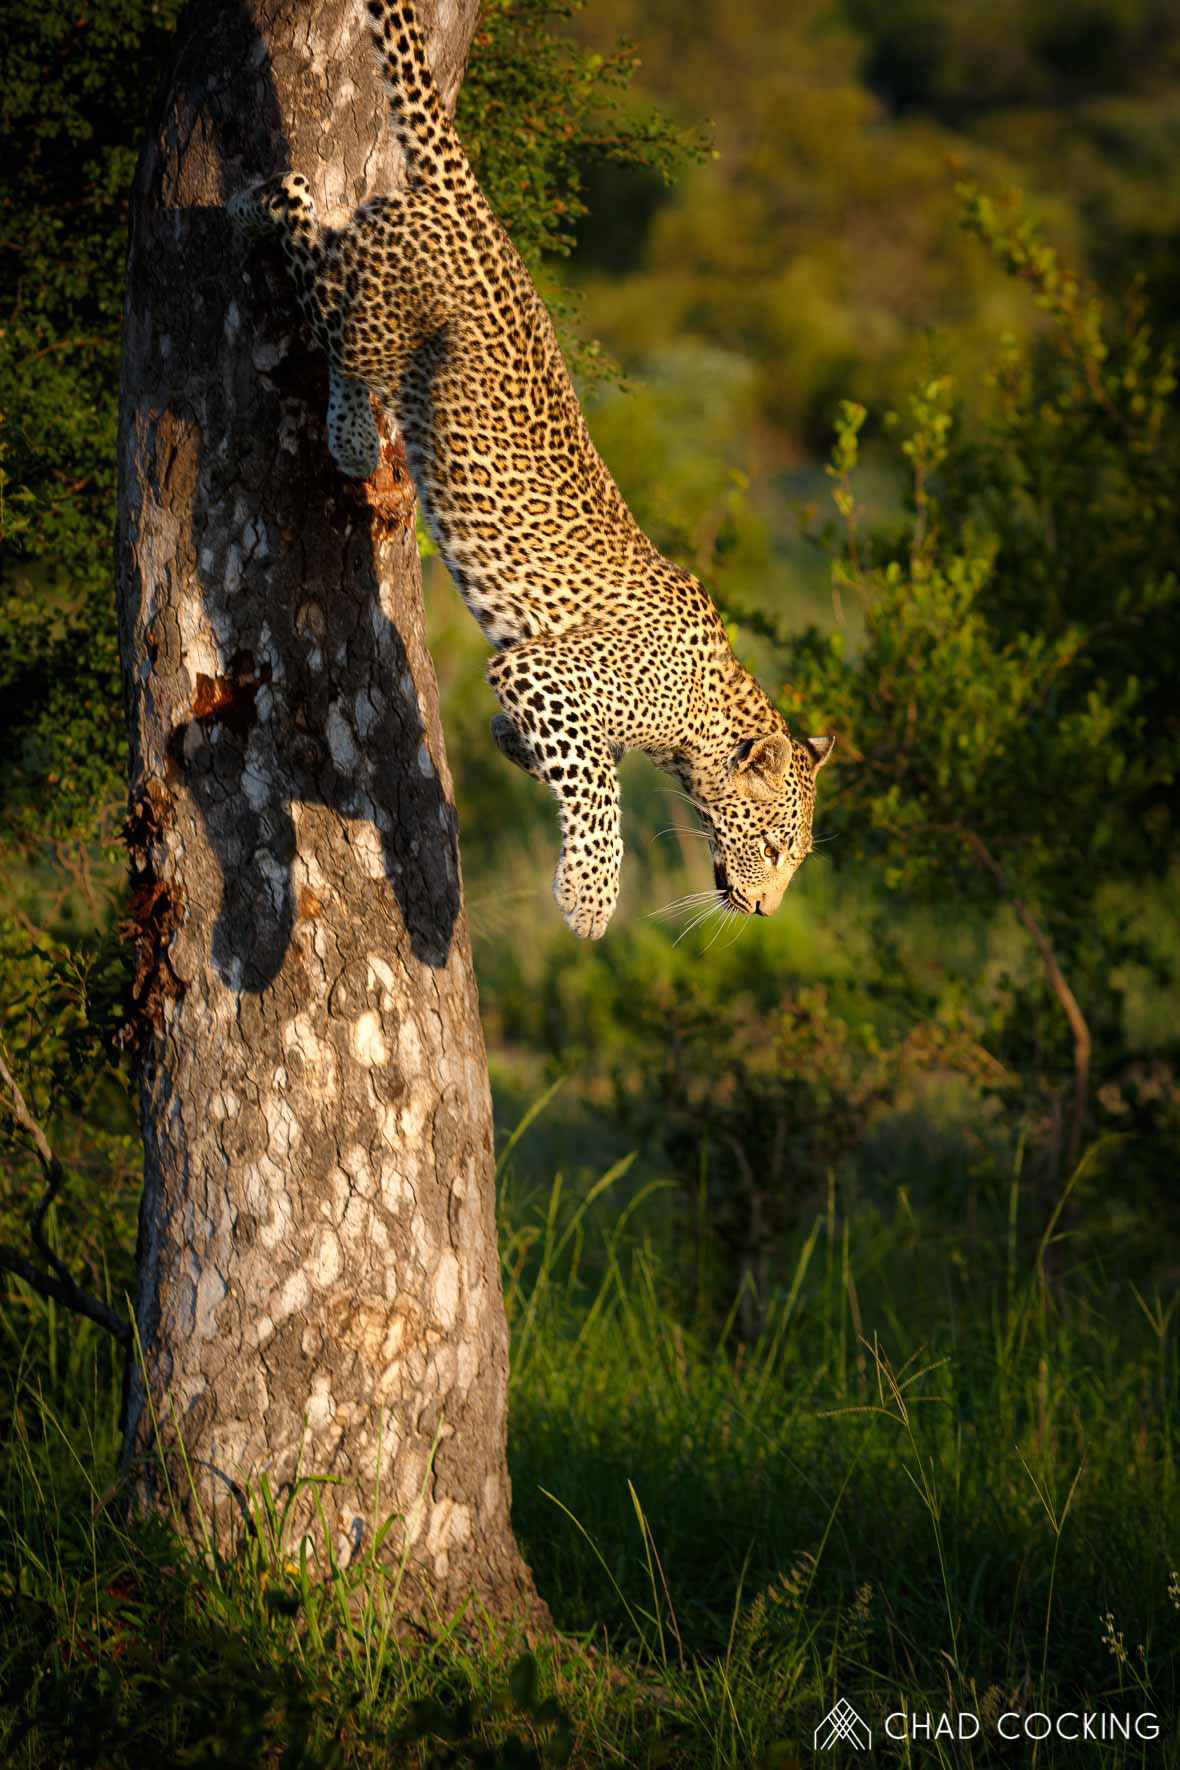 Tanda Tula - Male leopard climbs down a tree in the Greater Kruger Park, South Africa